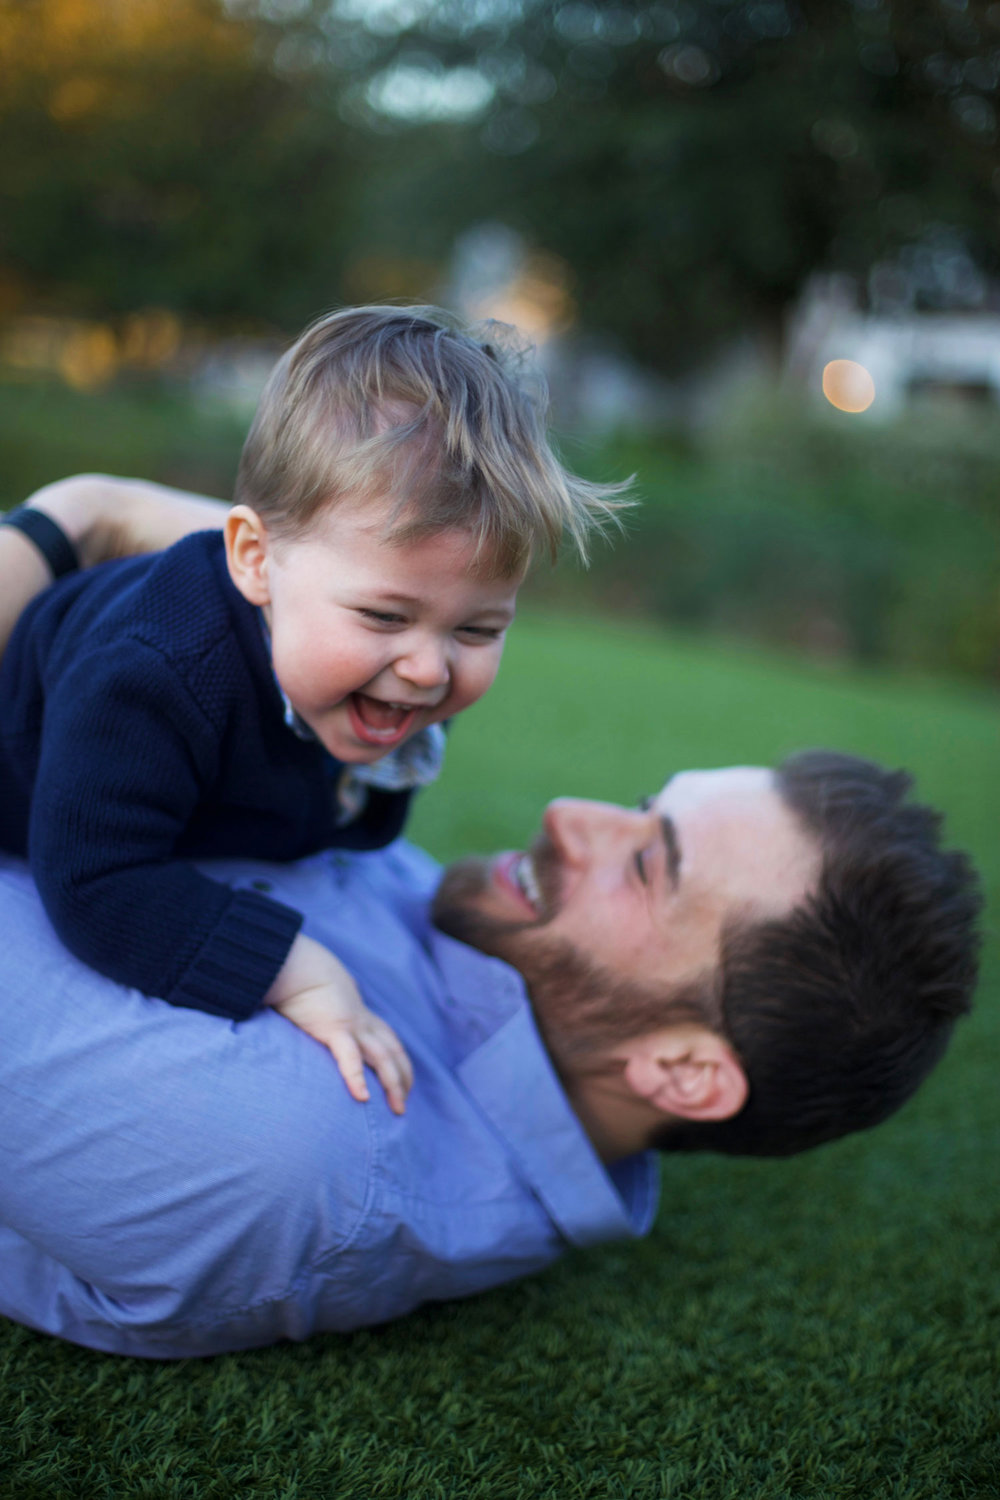 dad and son photo ideas